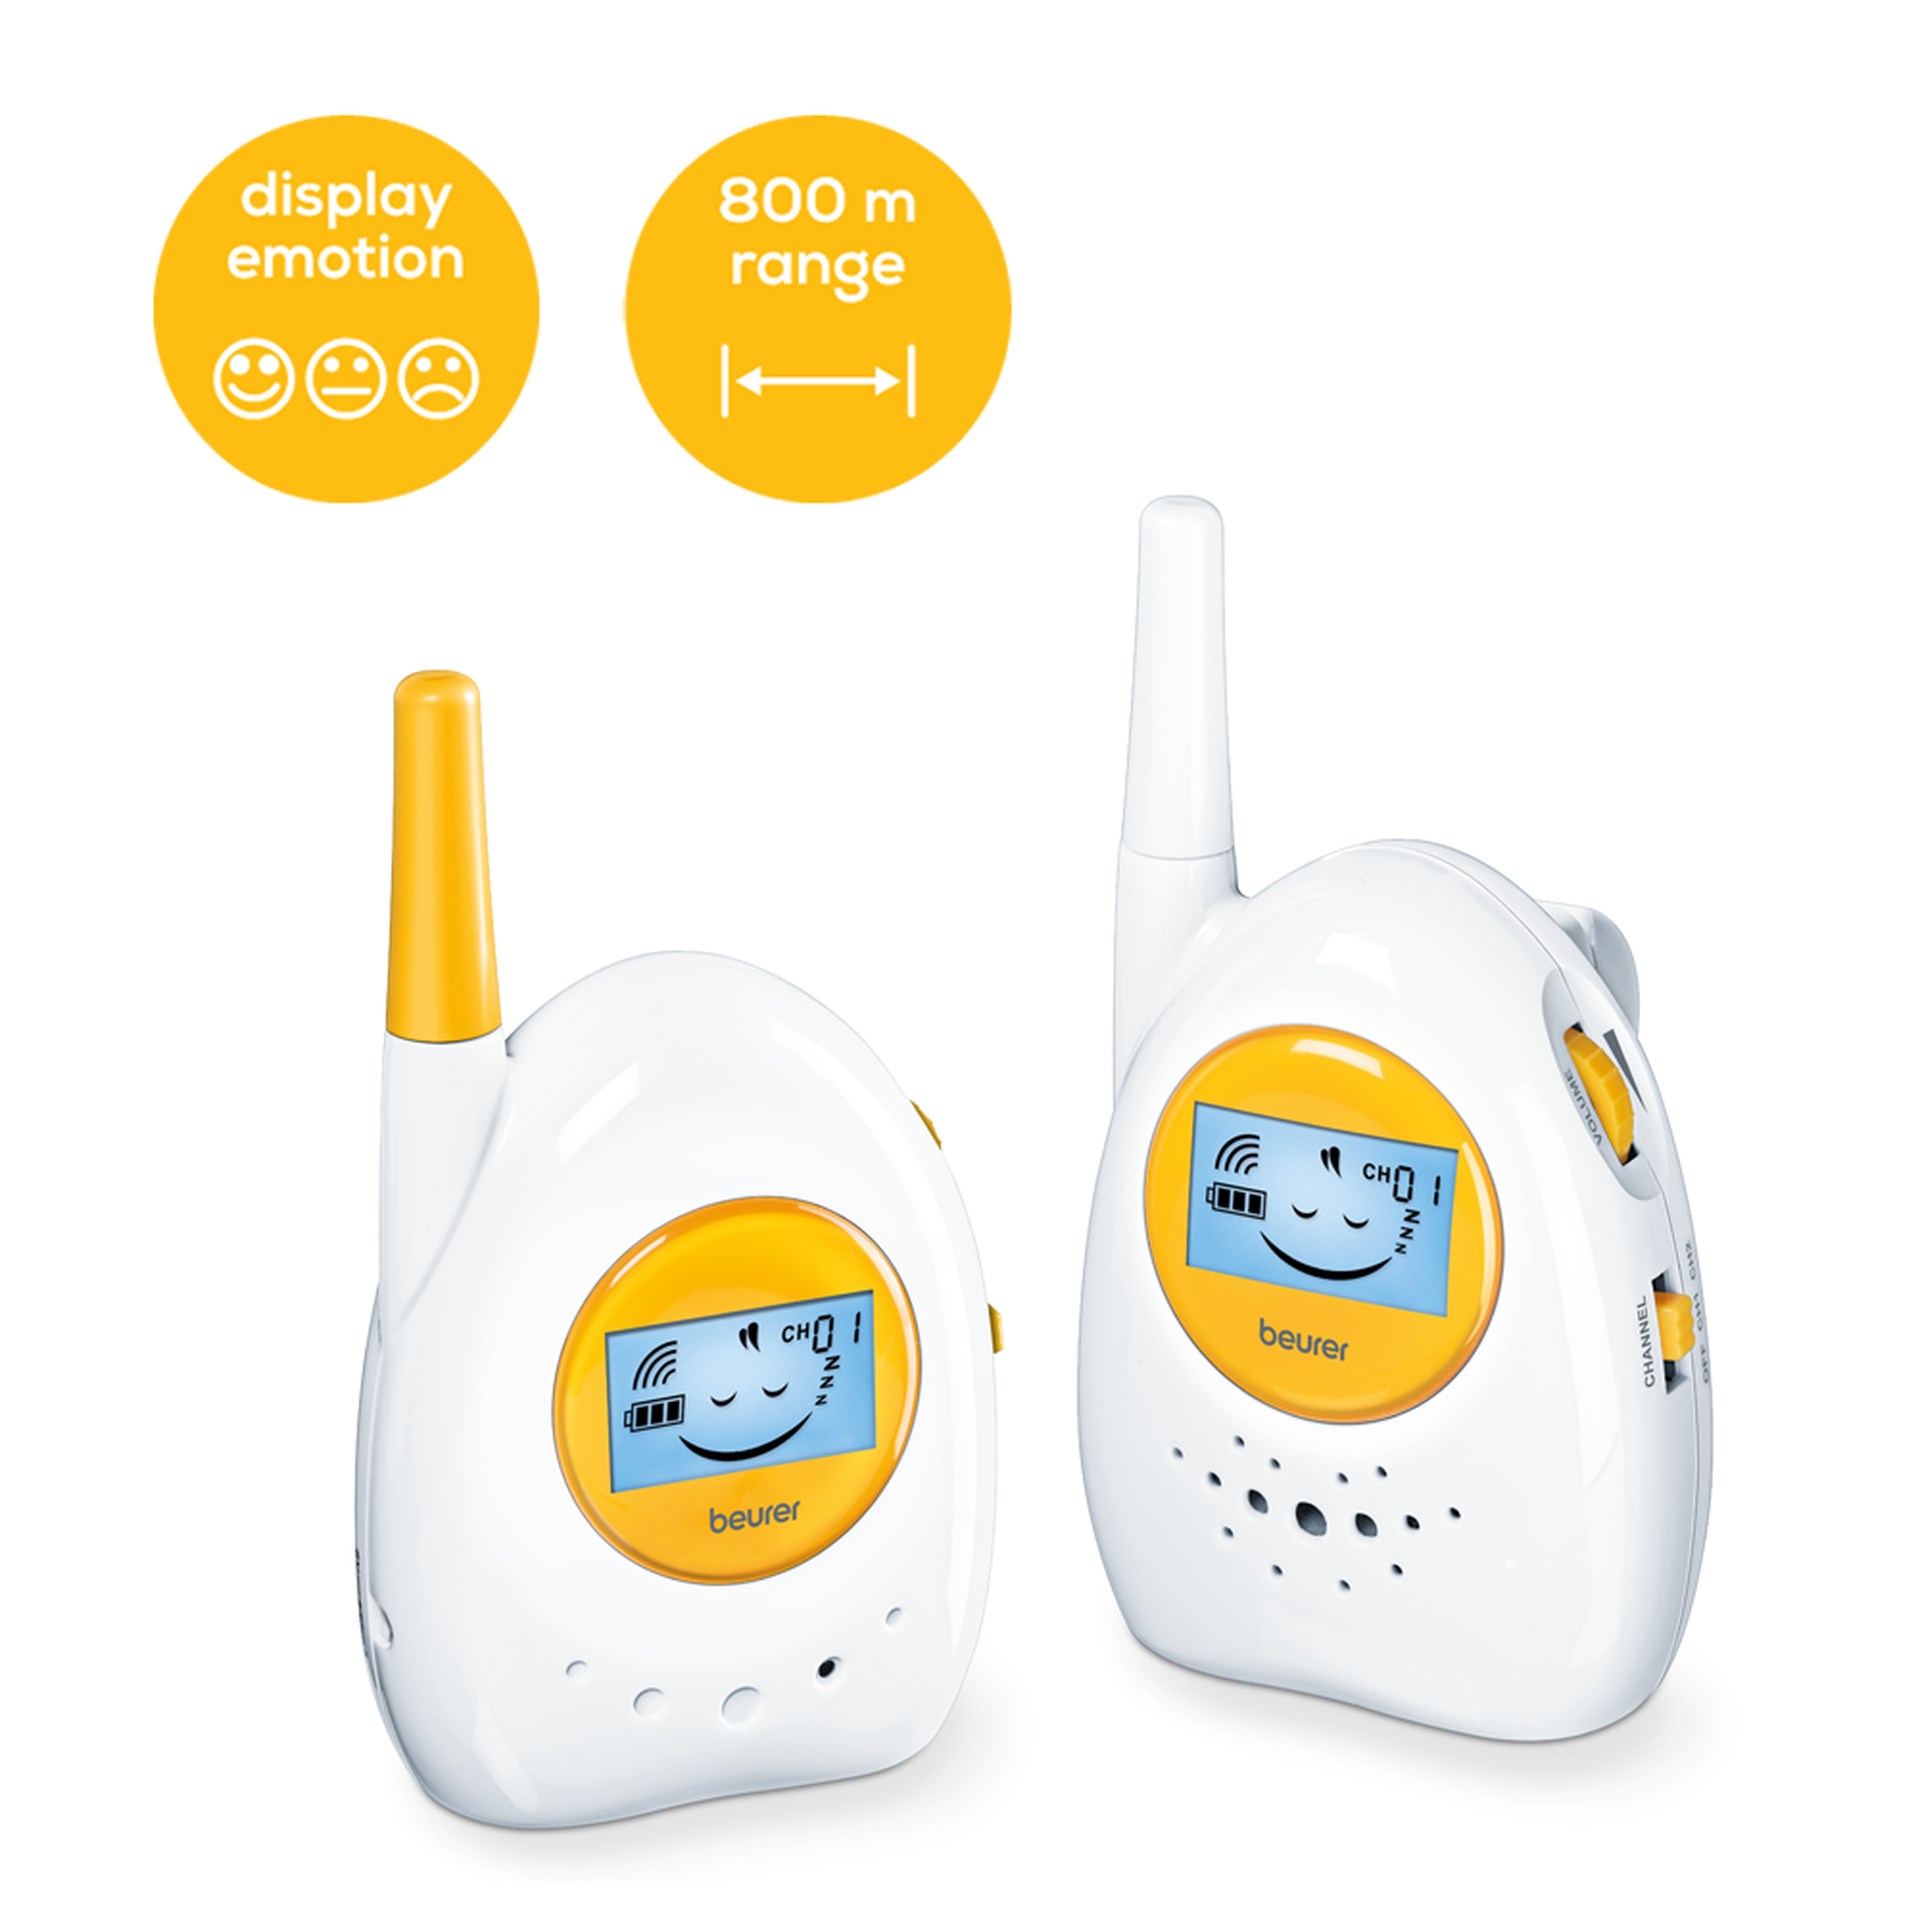 d7d248567e7 BY 84 - Analogue baby monitor | beurer